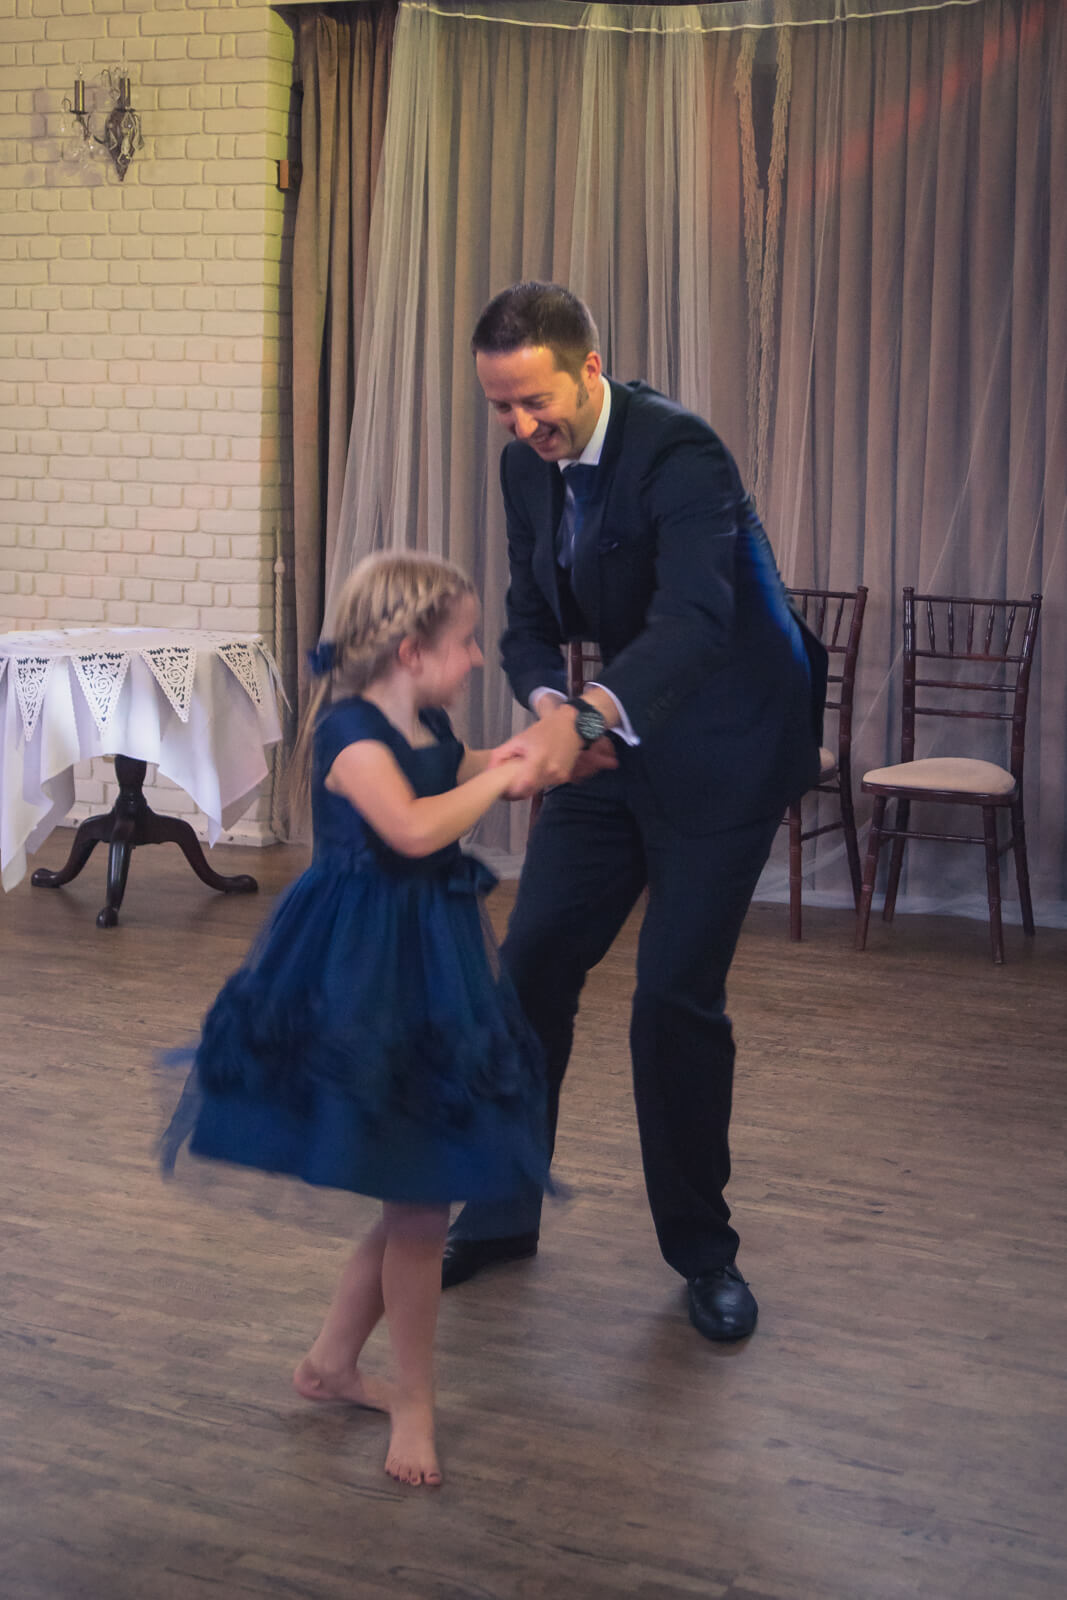 Dad and young daughter dance together at wedding reception